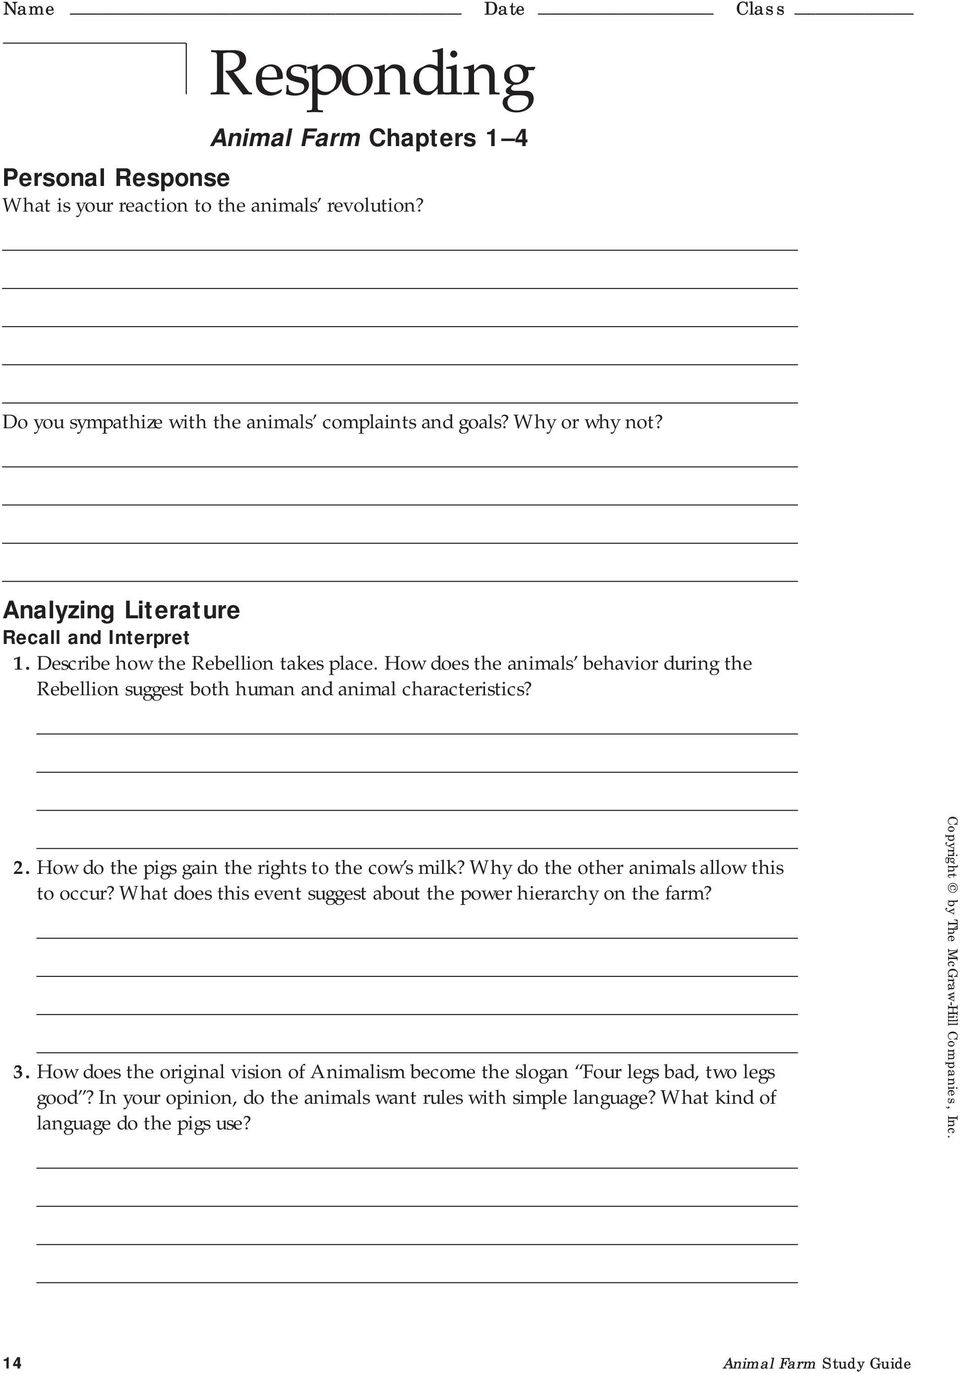 14 Animal Farm Study Guide. How do the pigs gain the rights to the cow s  milk? Why do the